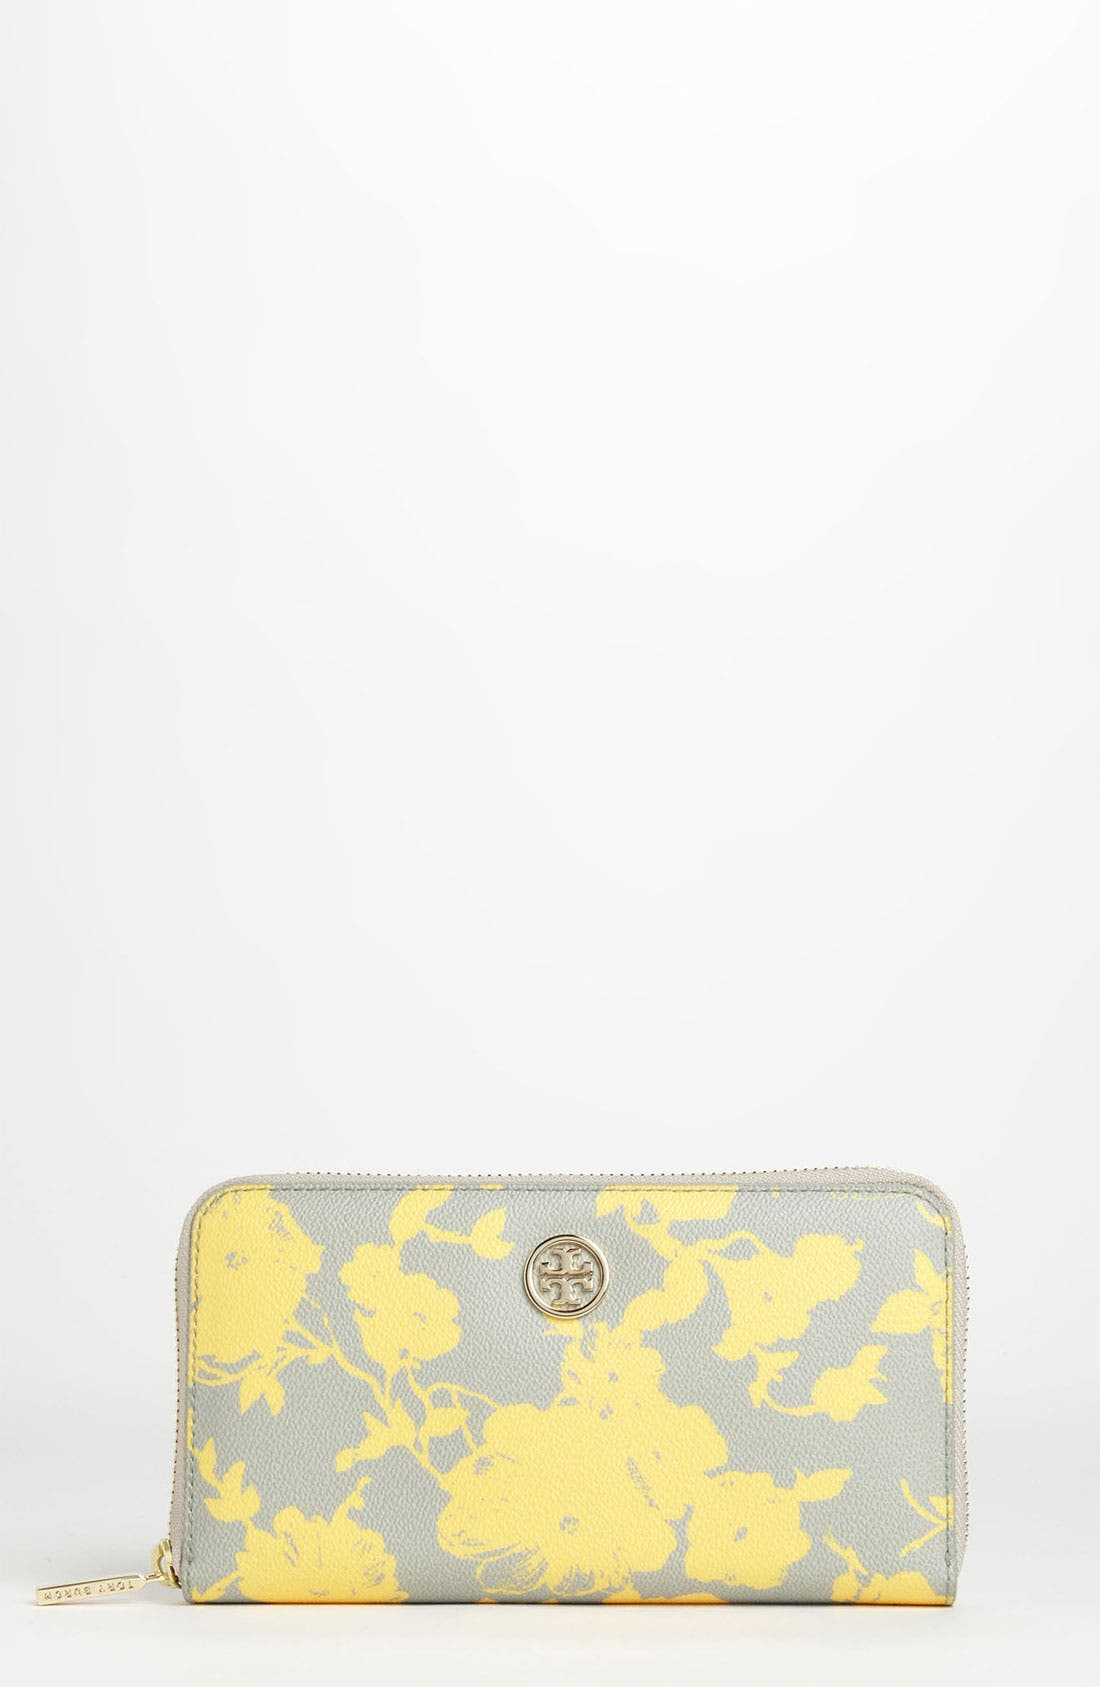 Alternate Image 1 Selected - Tory Burch 'Robinson' Continental Wallet